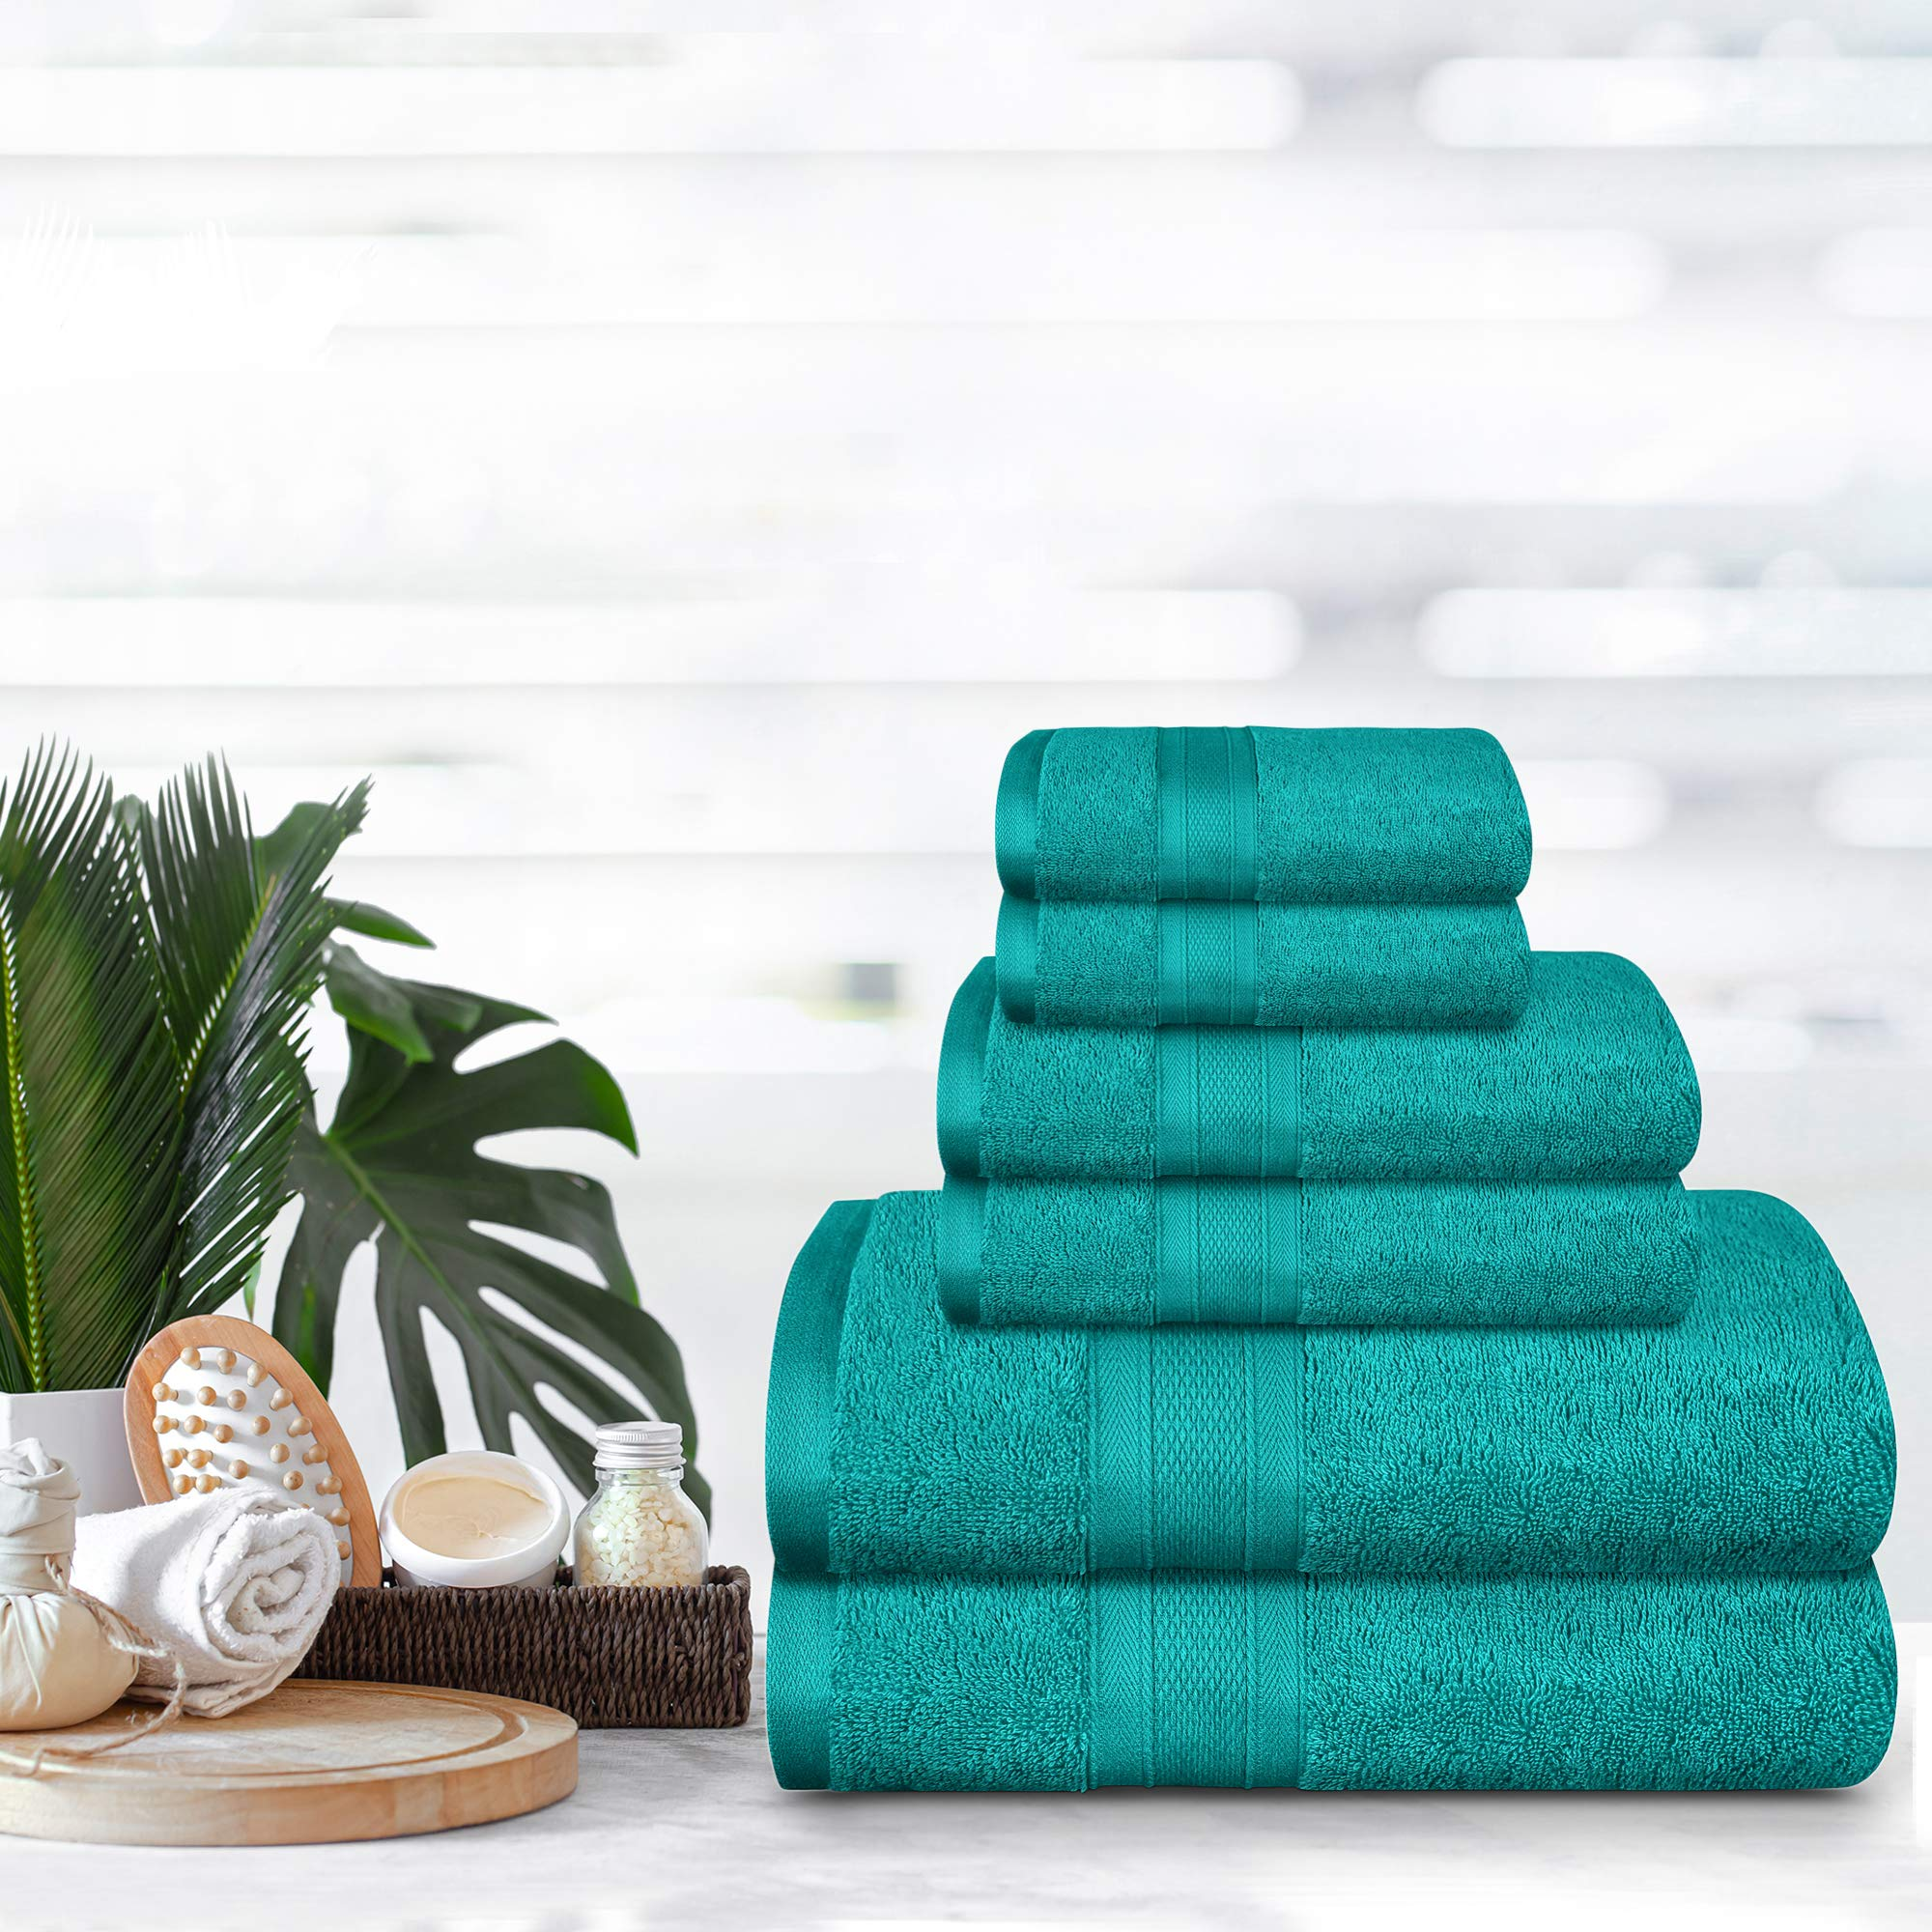 Up to 29% off on Premium Bath Linen